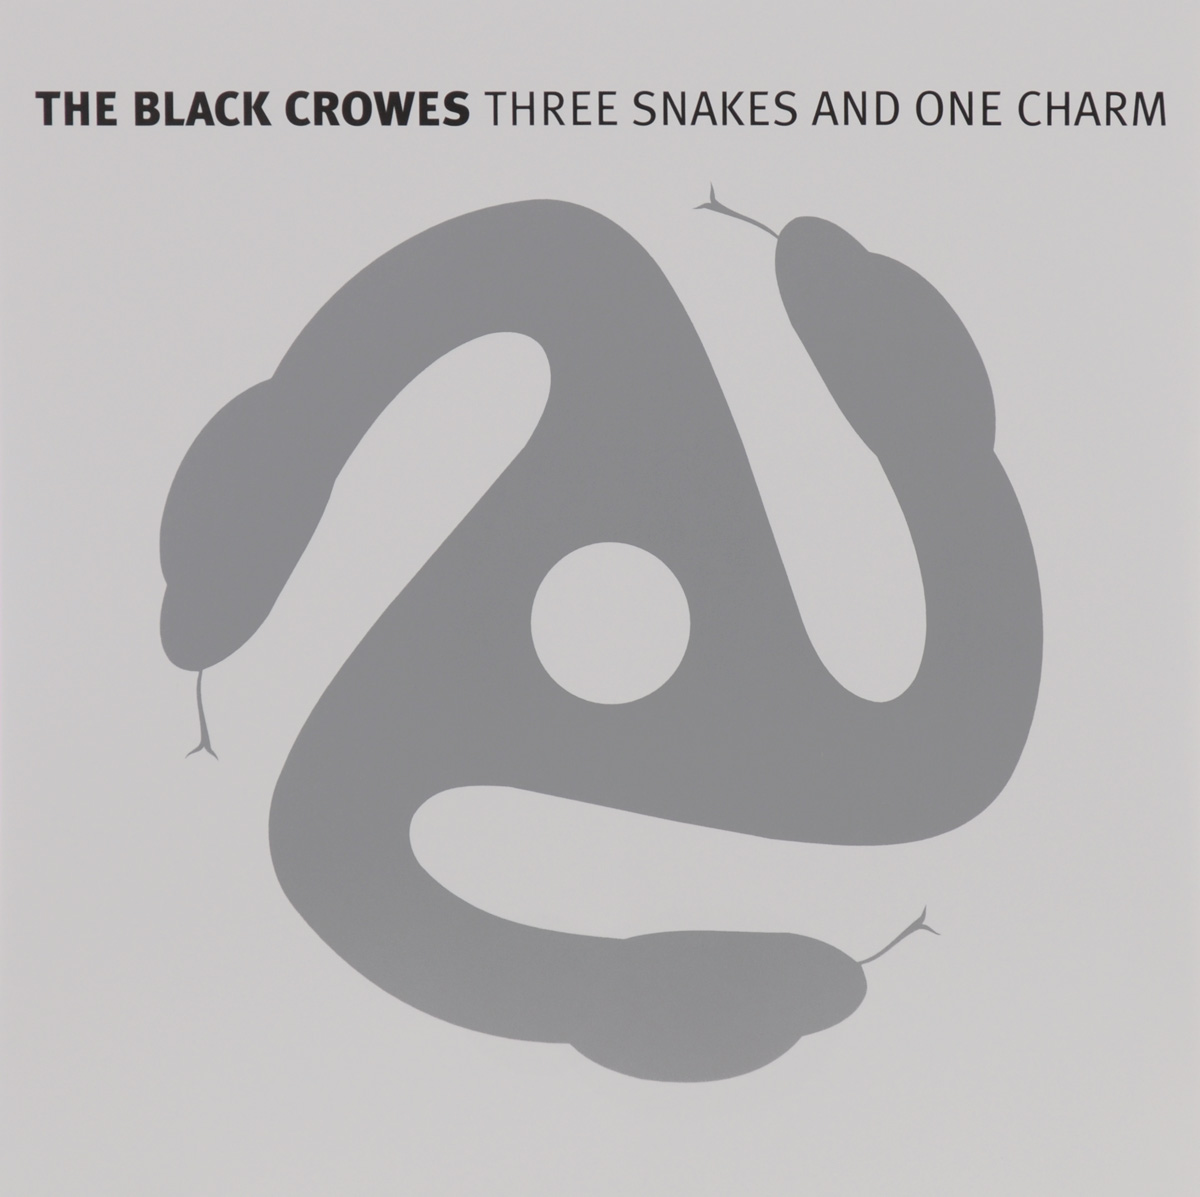 The Black Crowes The Black Crowes. Three Snakes And One Charm (2 LP) the black crowes the black crowesblack crowes three snakes and one charm 2 lp